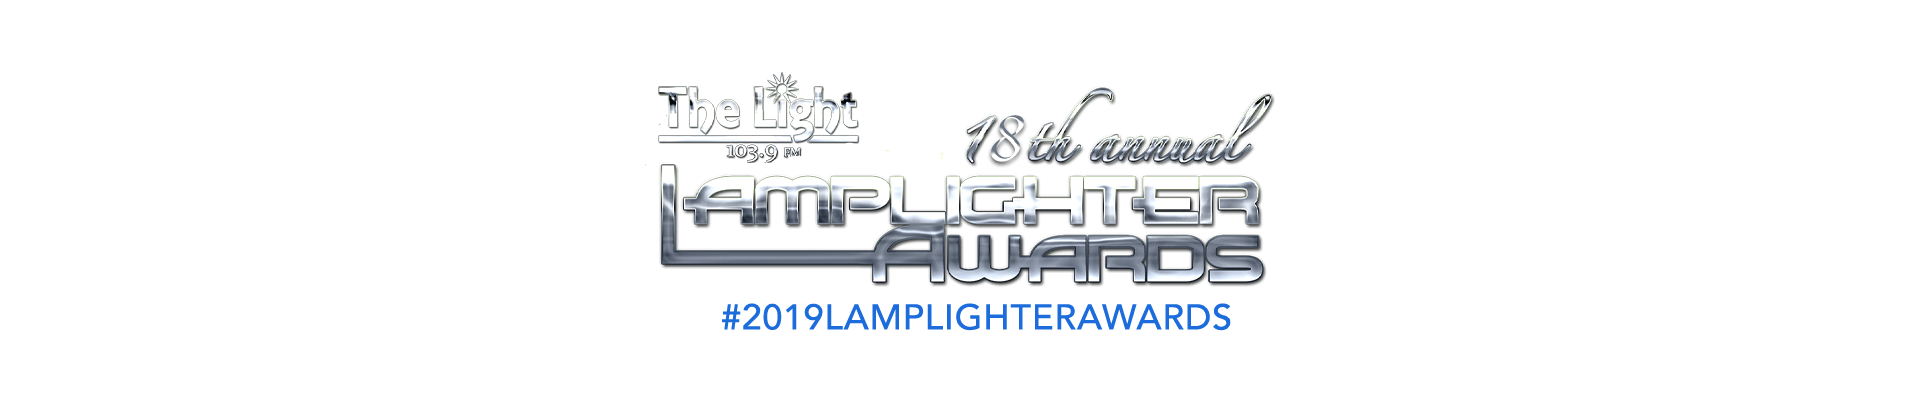 2019 Lamplighter Awards Header Logo